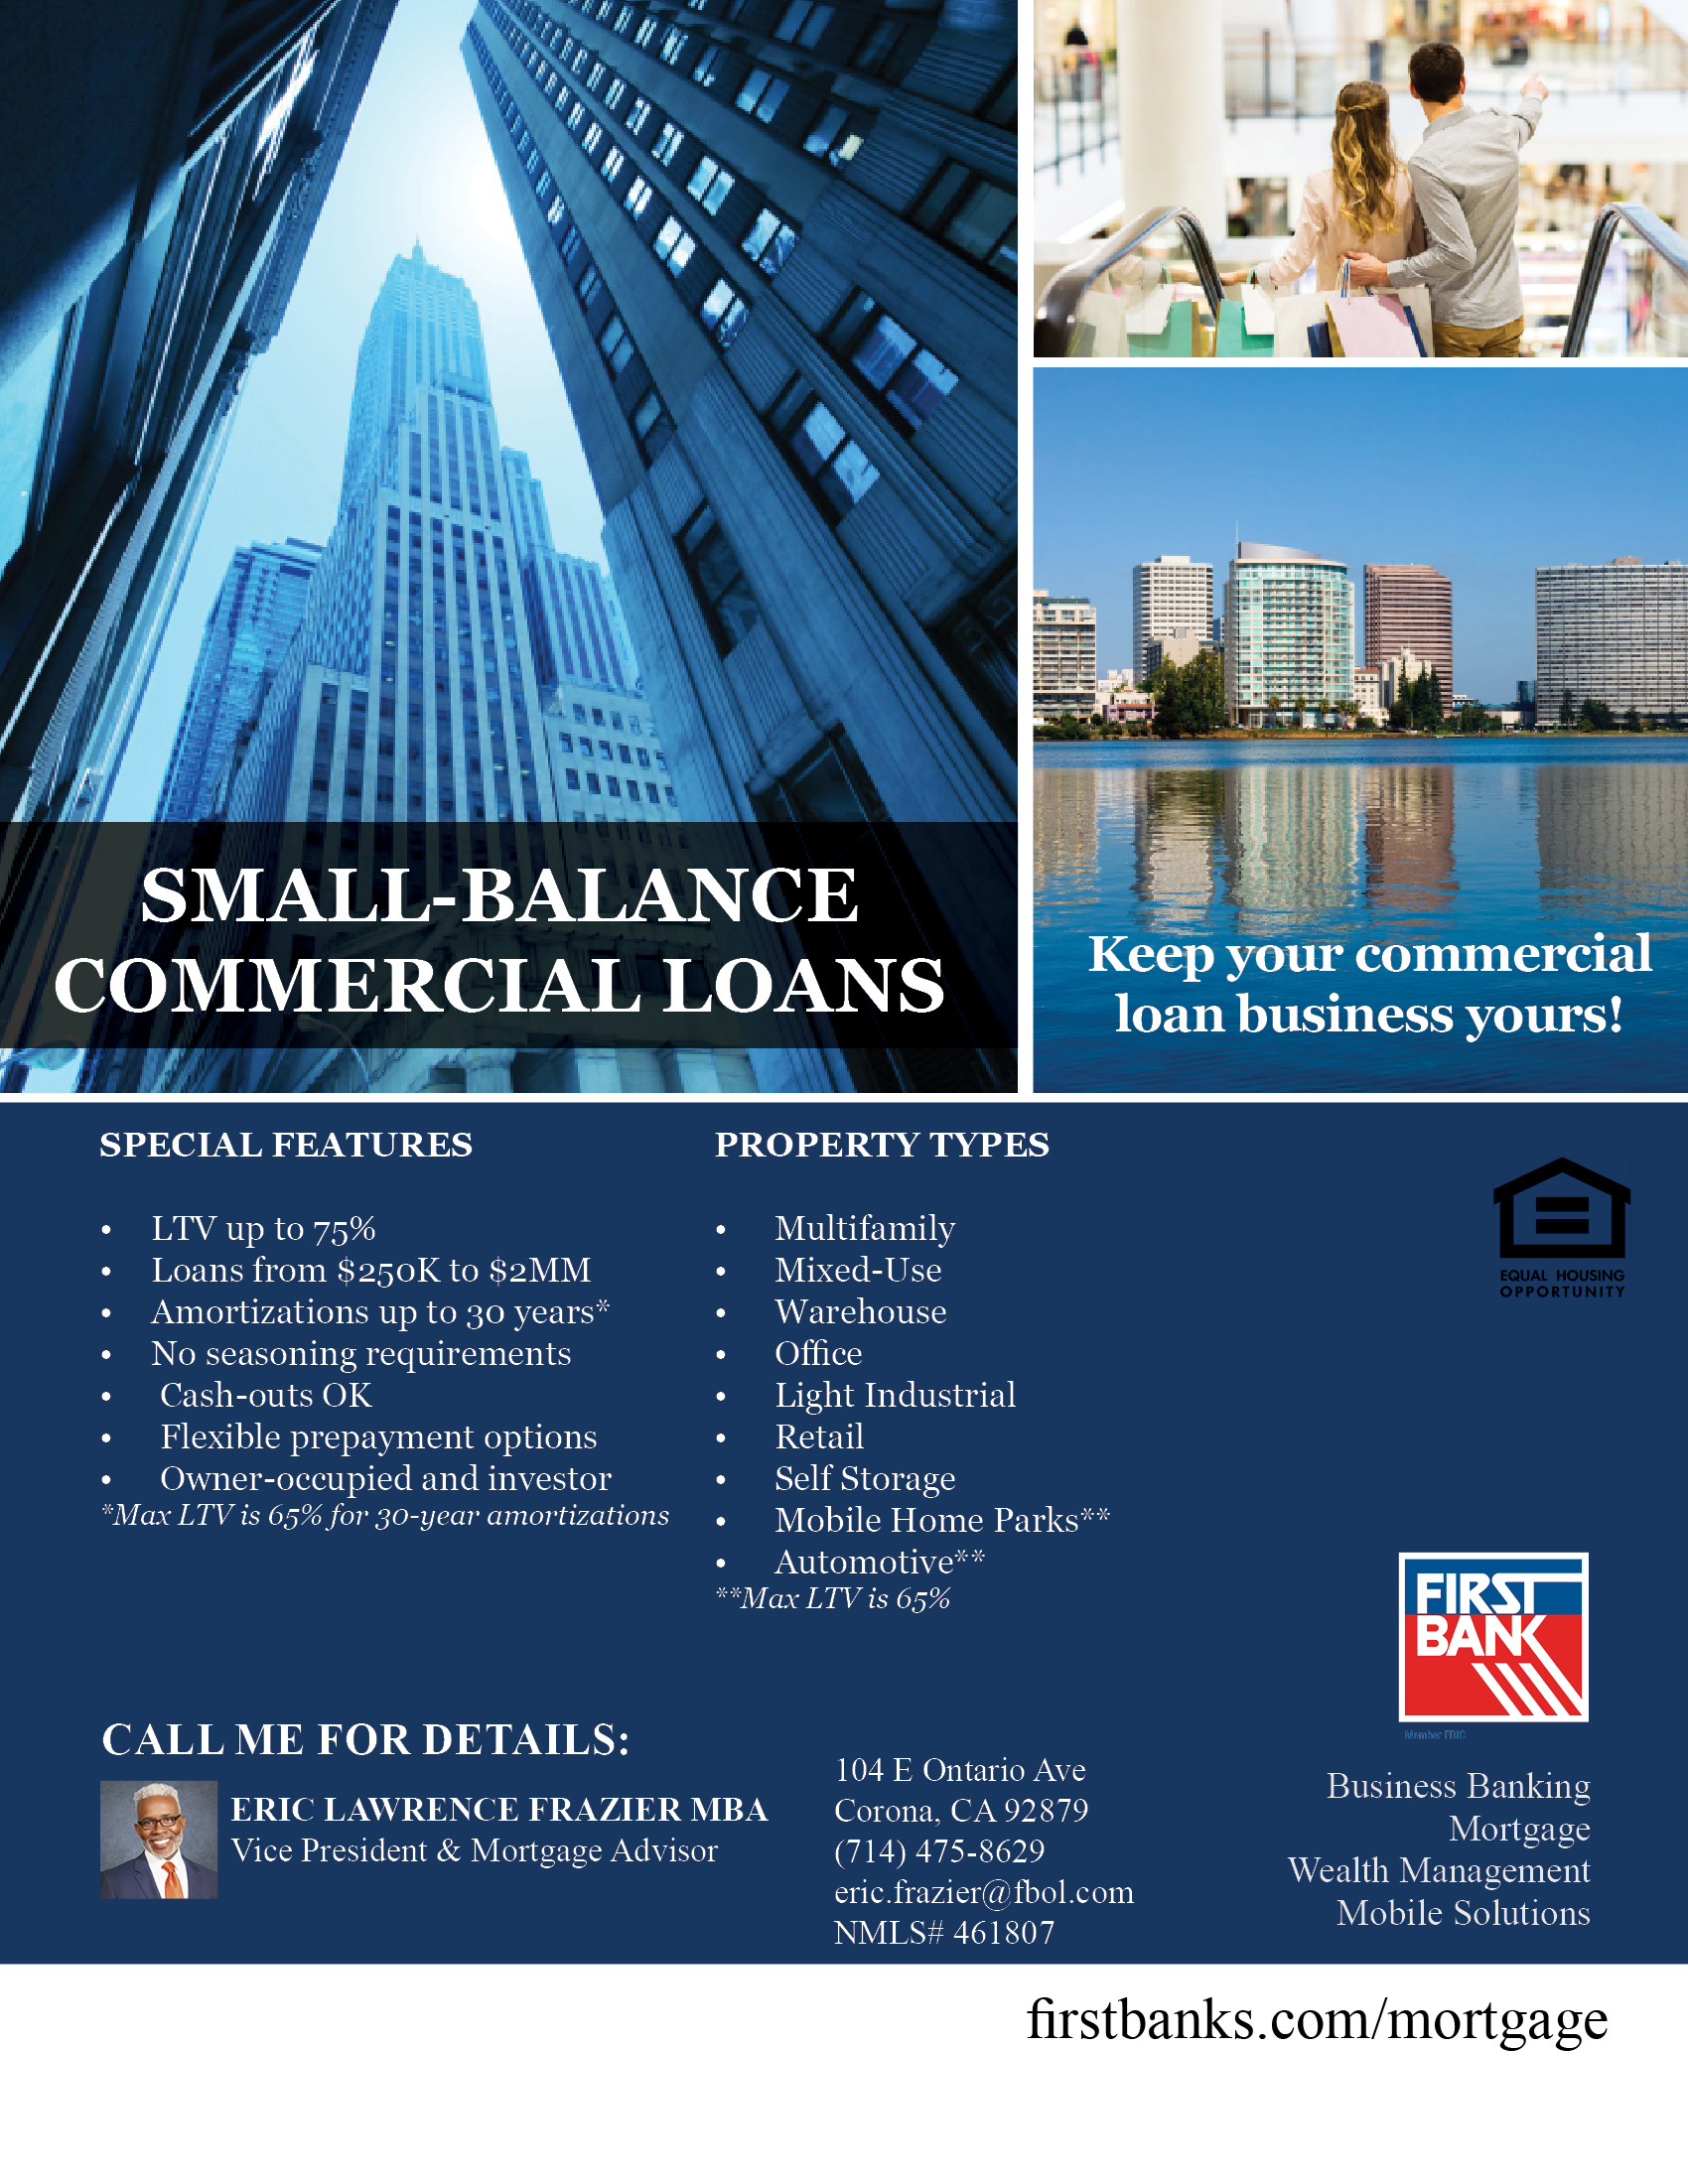 Small Balance Commercial Loans